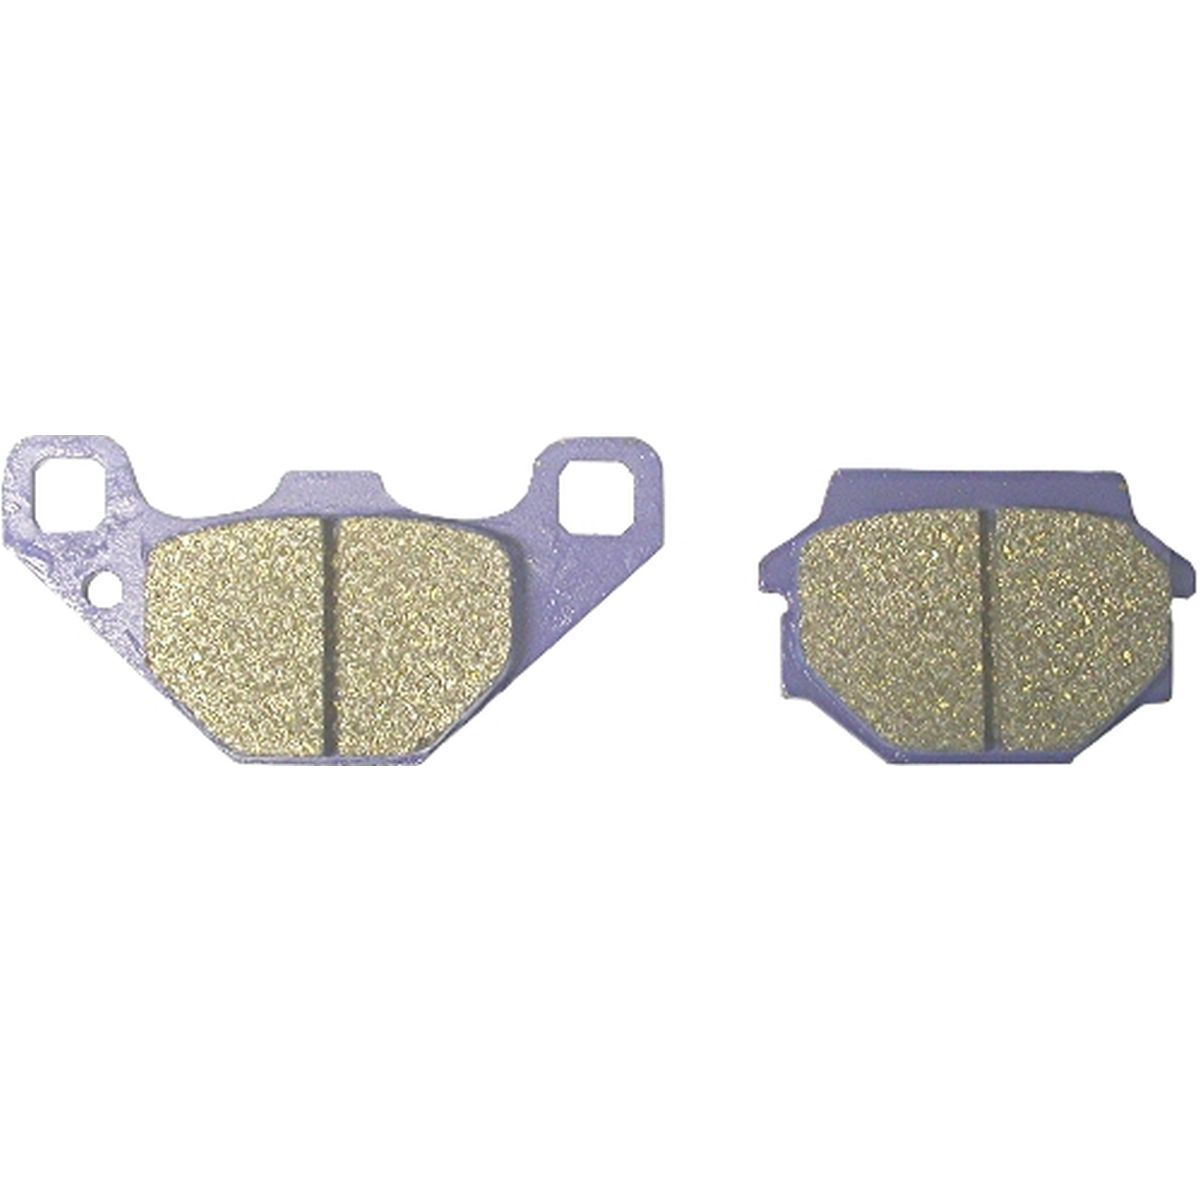 Brake Disc Pads Front R//H Kyoto for 1985 Kawasaki KX 125 D1